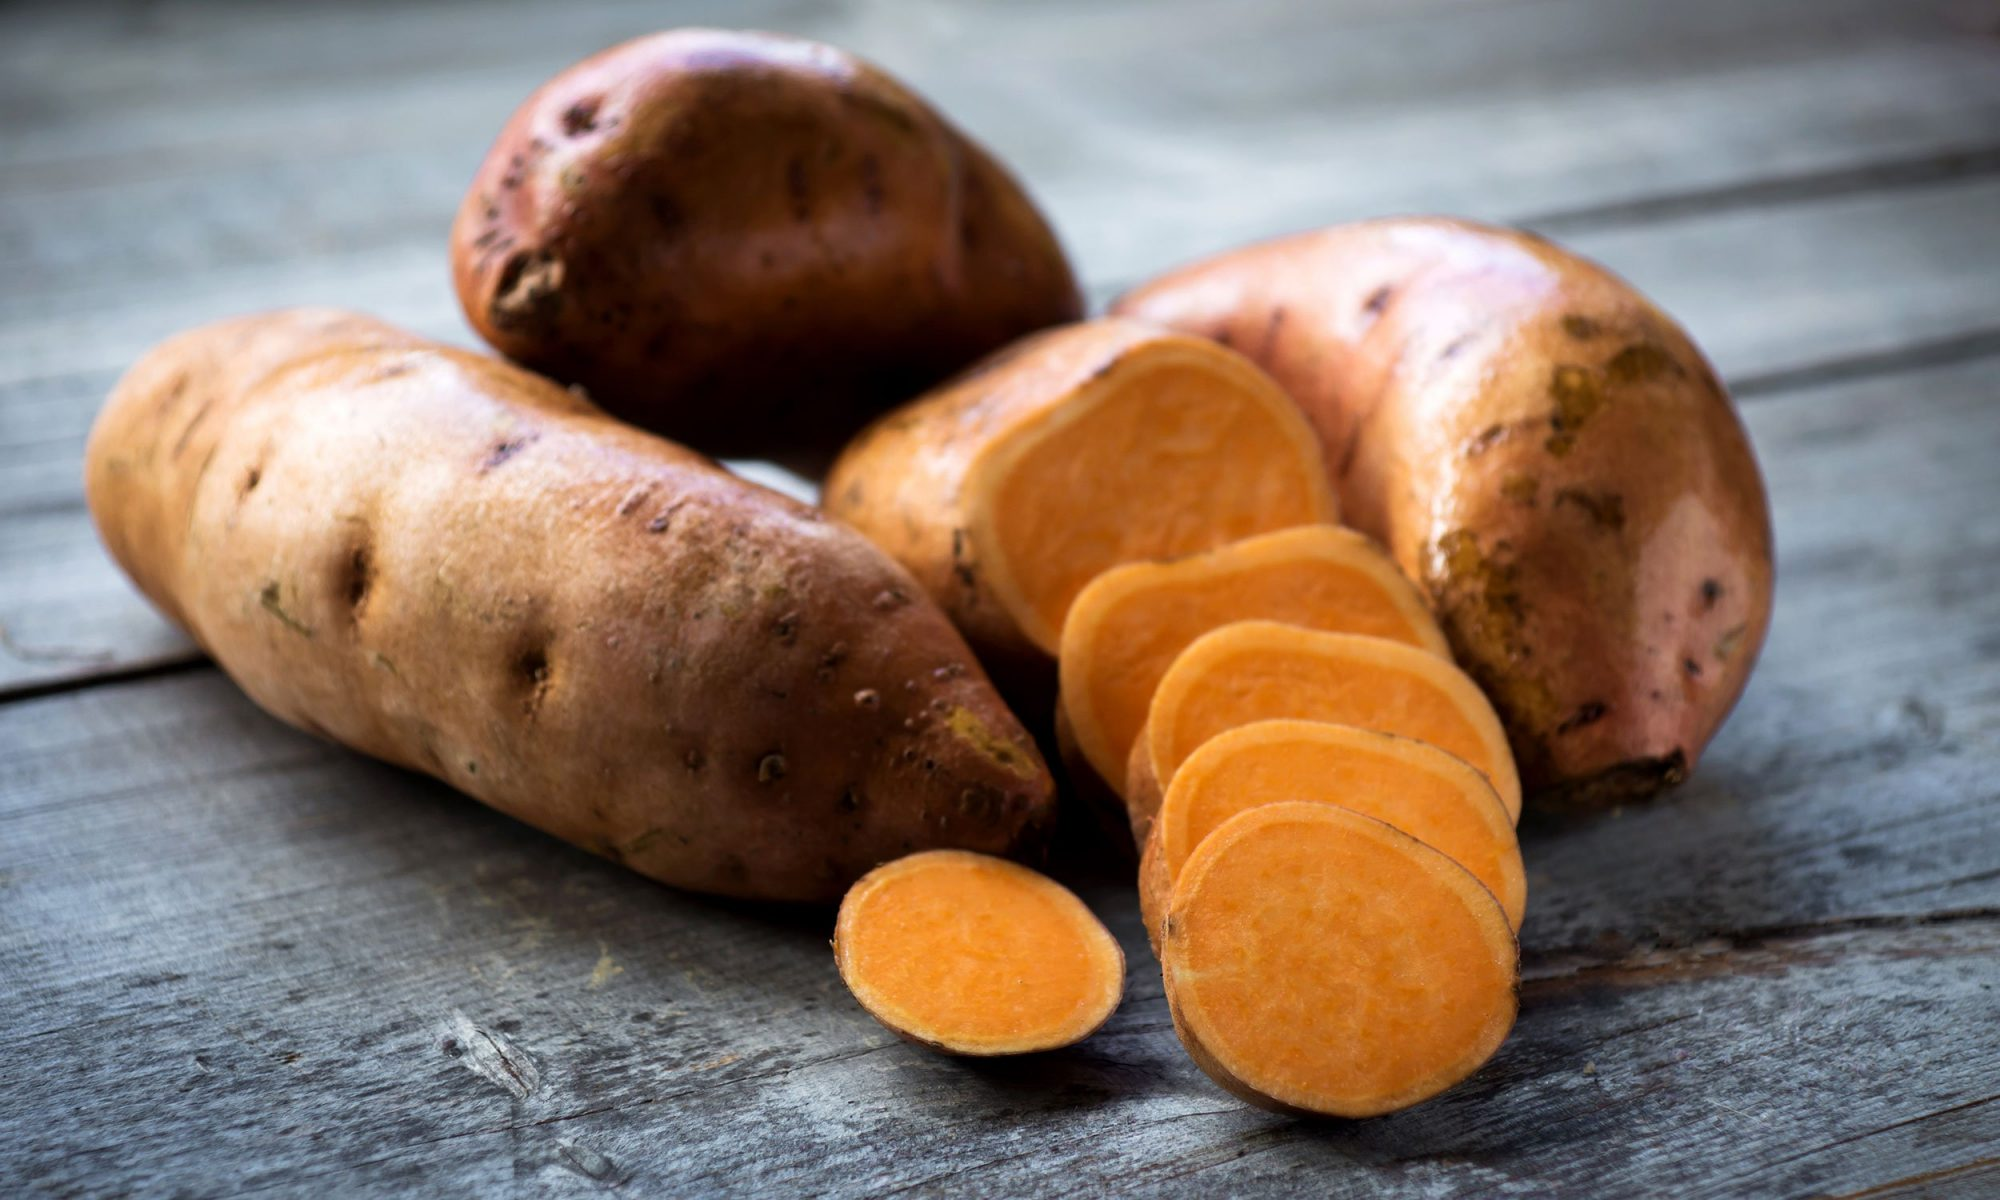 How to Store Sweet Potatoes